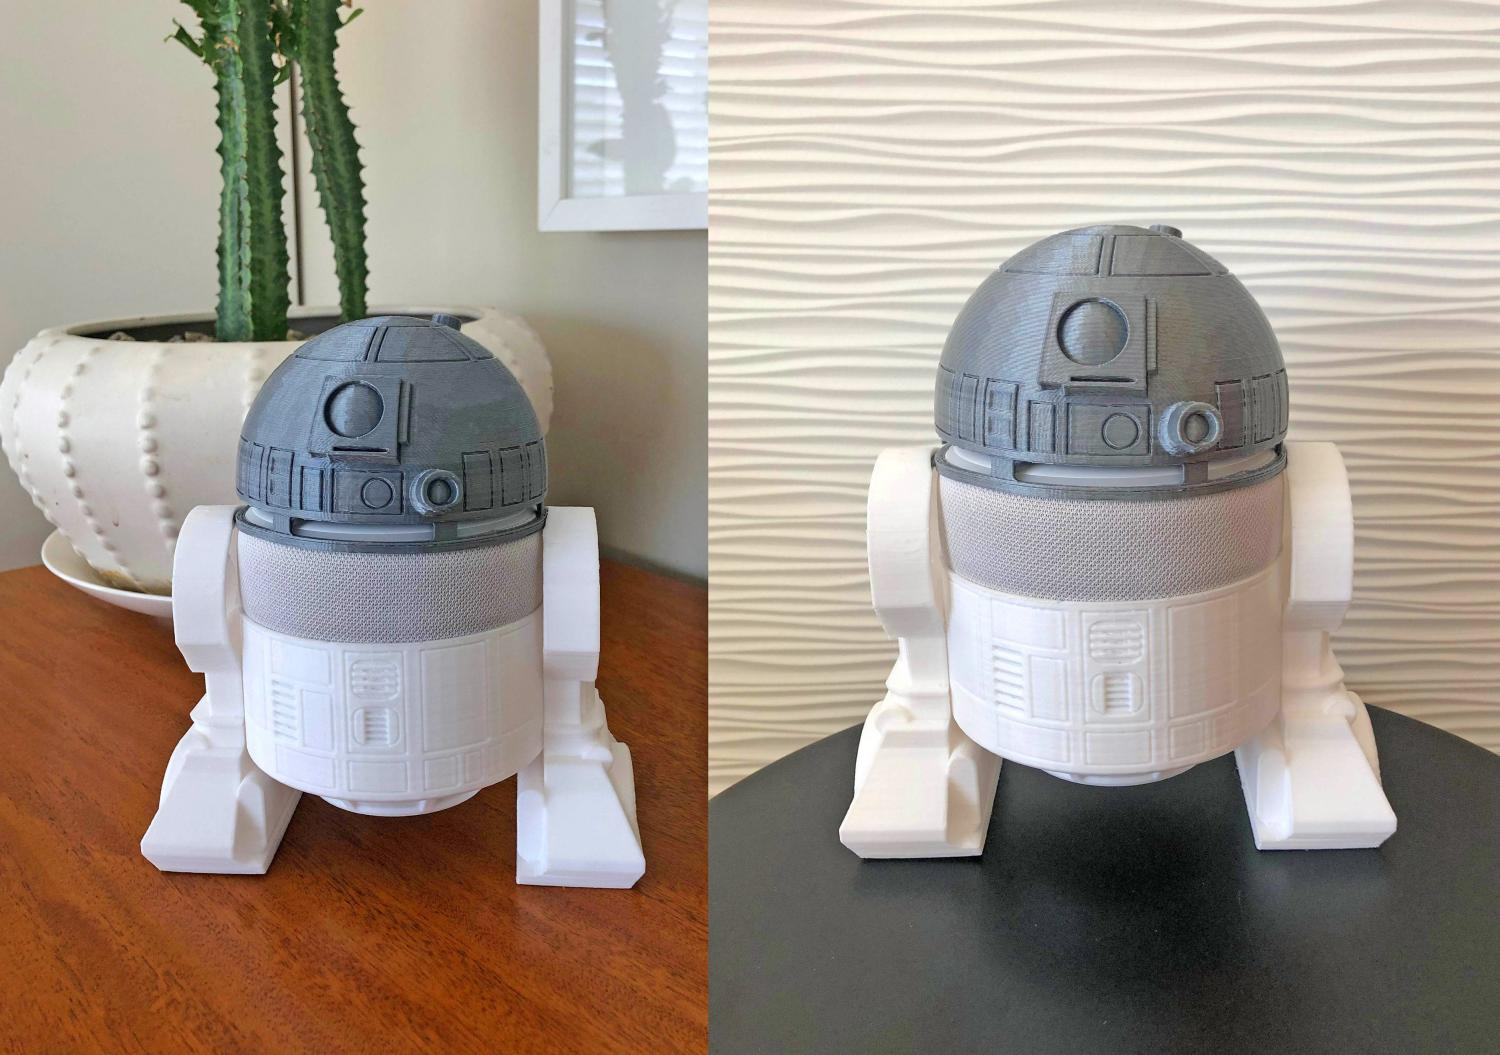 3D Printed Smart Speaker Holder Turns Your Amazon Echo Dot Into Star Wars Character R2-D2